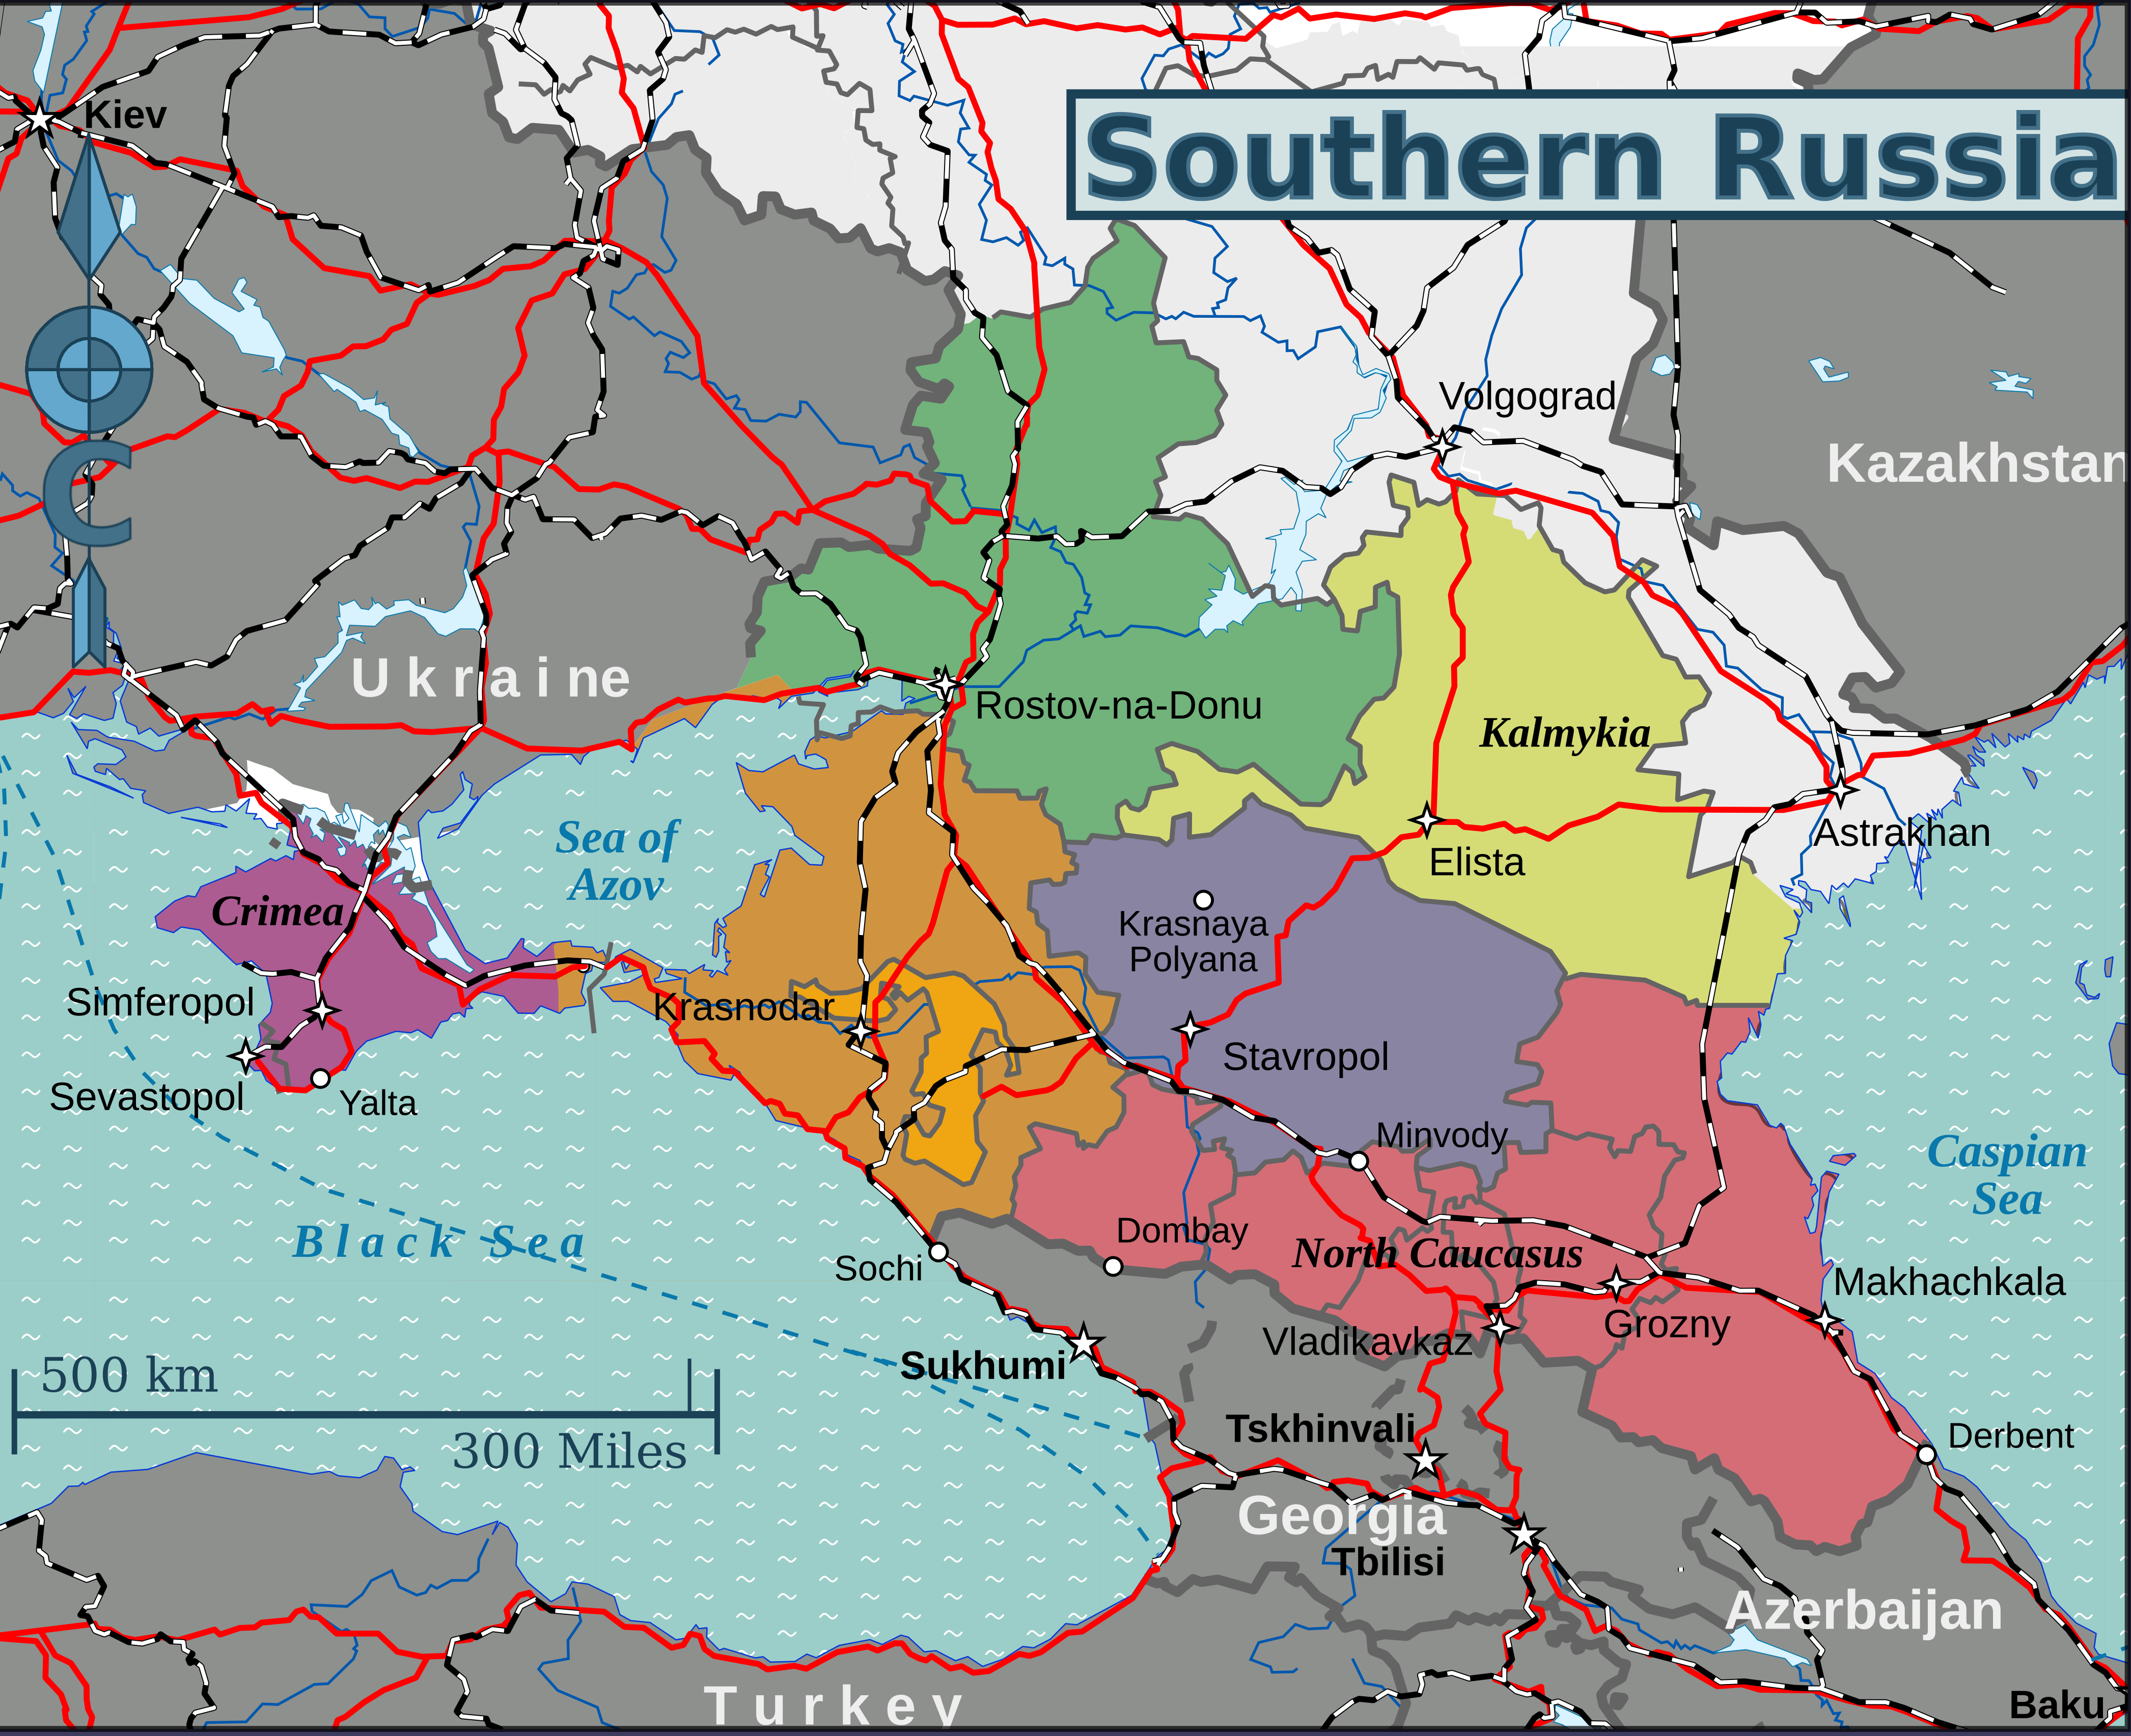 Cartina Russia Regioni.File Map Of Southern Russia En Png Wikimedia Commons